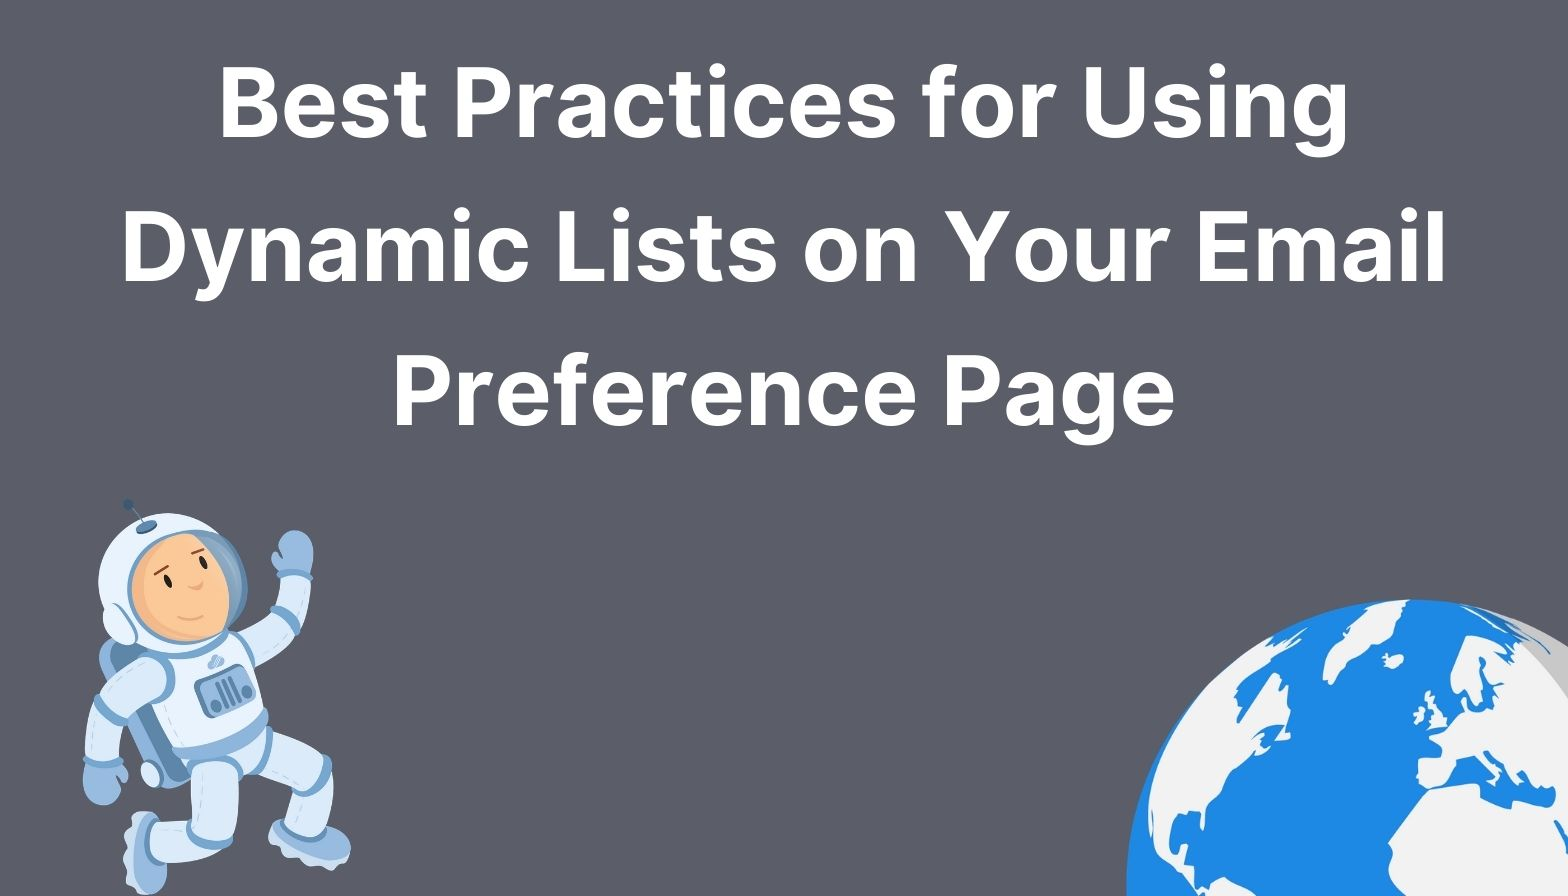 Best Practices for Using Dynamic Lists on Your Email Preference Page